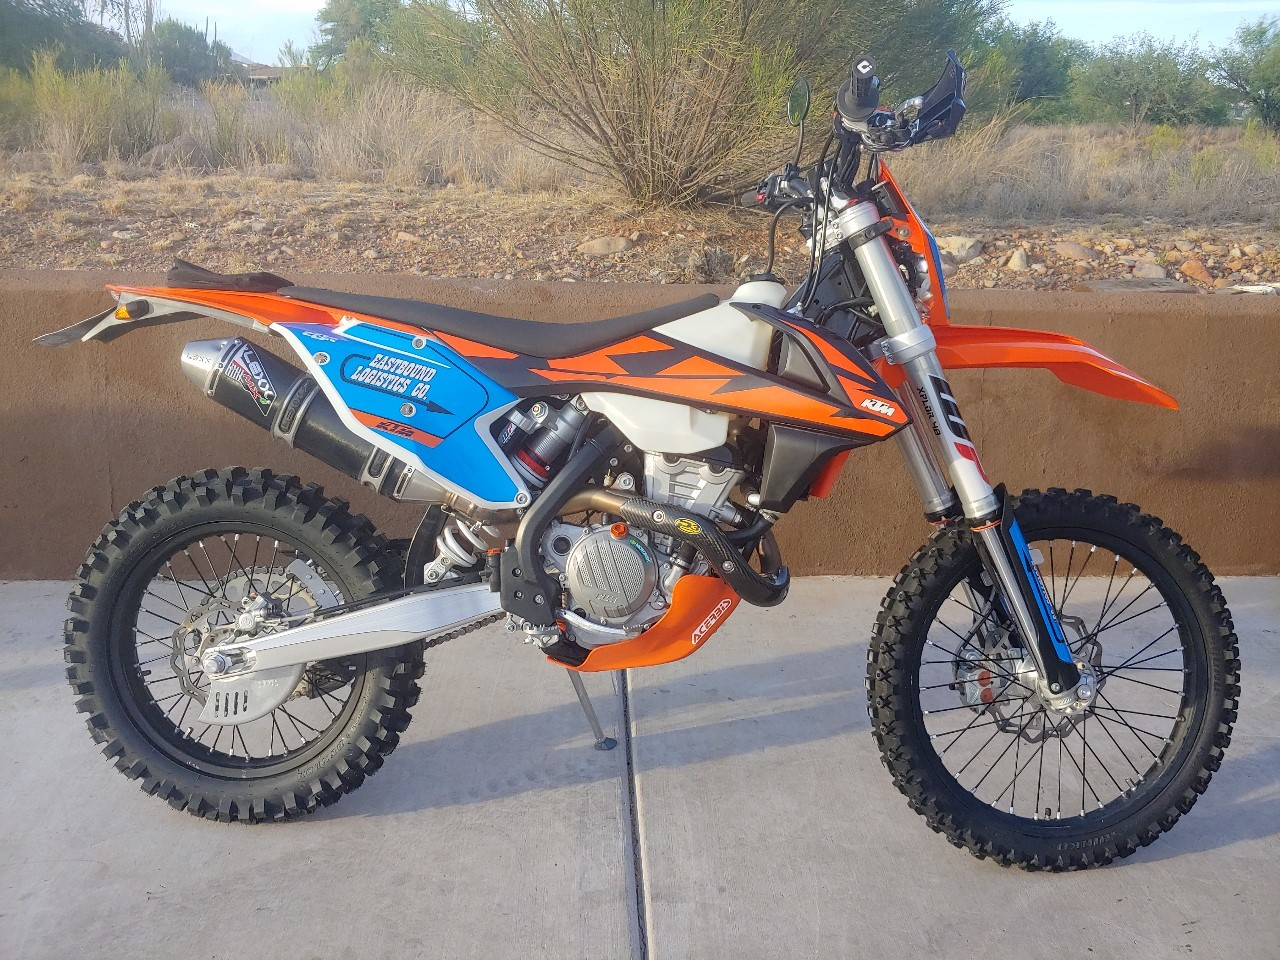 Arizona - Ktm For Sale - Ktm Motorcycle,Trailers - Snowmobile Trader